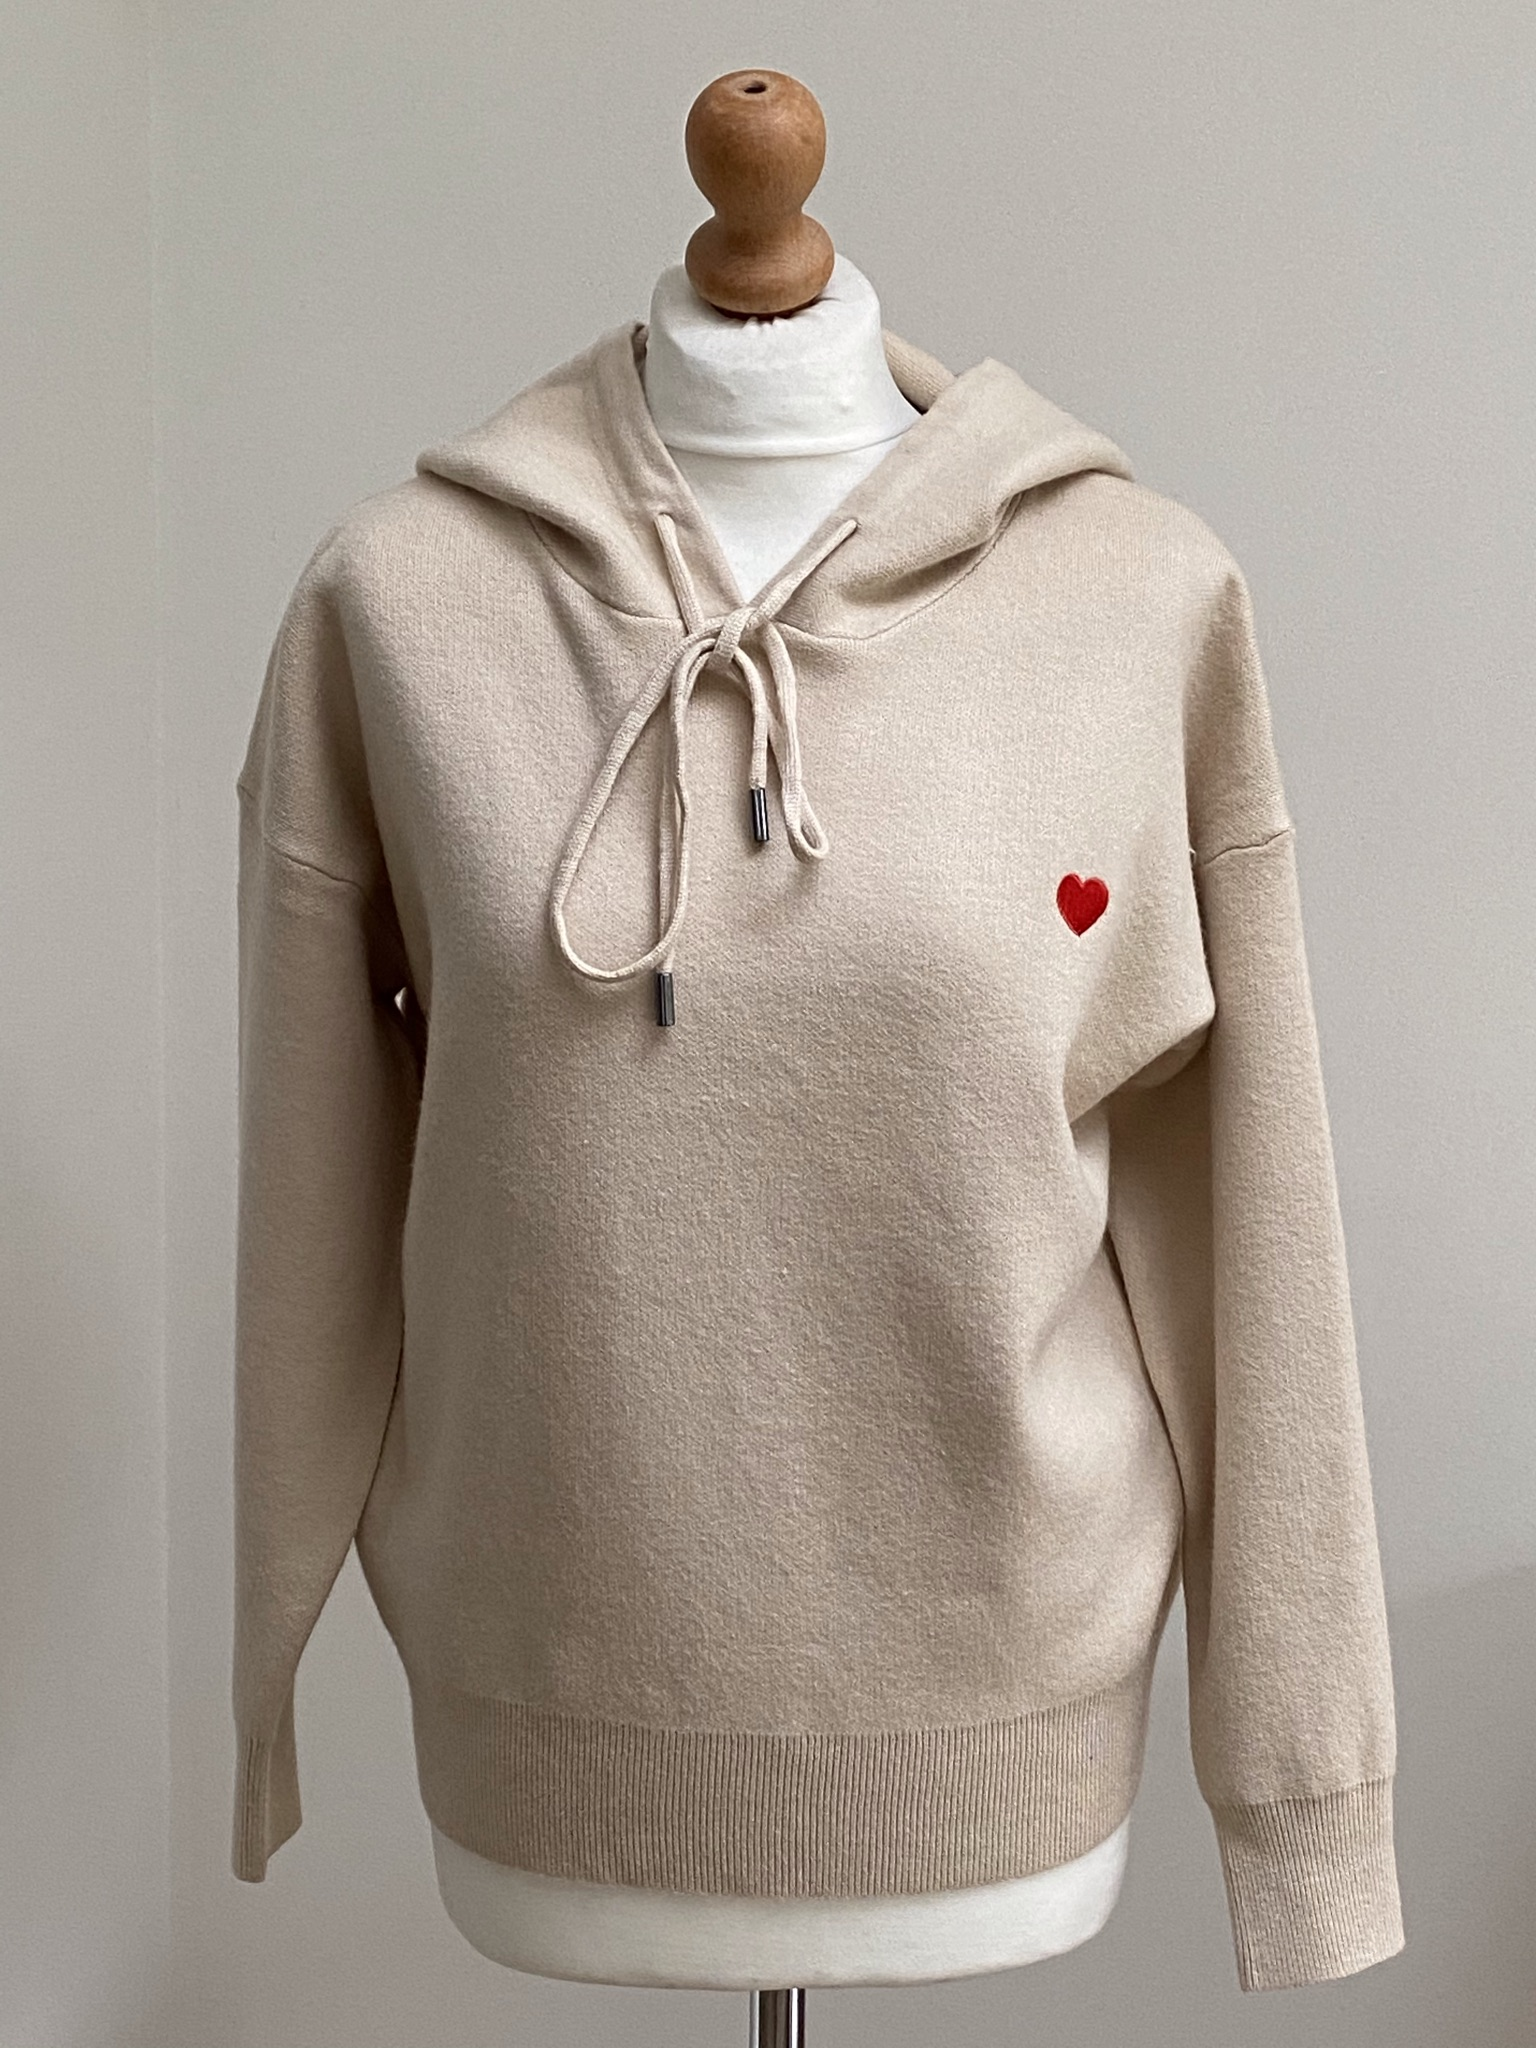 Jumper Hoodie - Available in 2 Colours